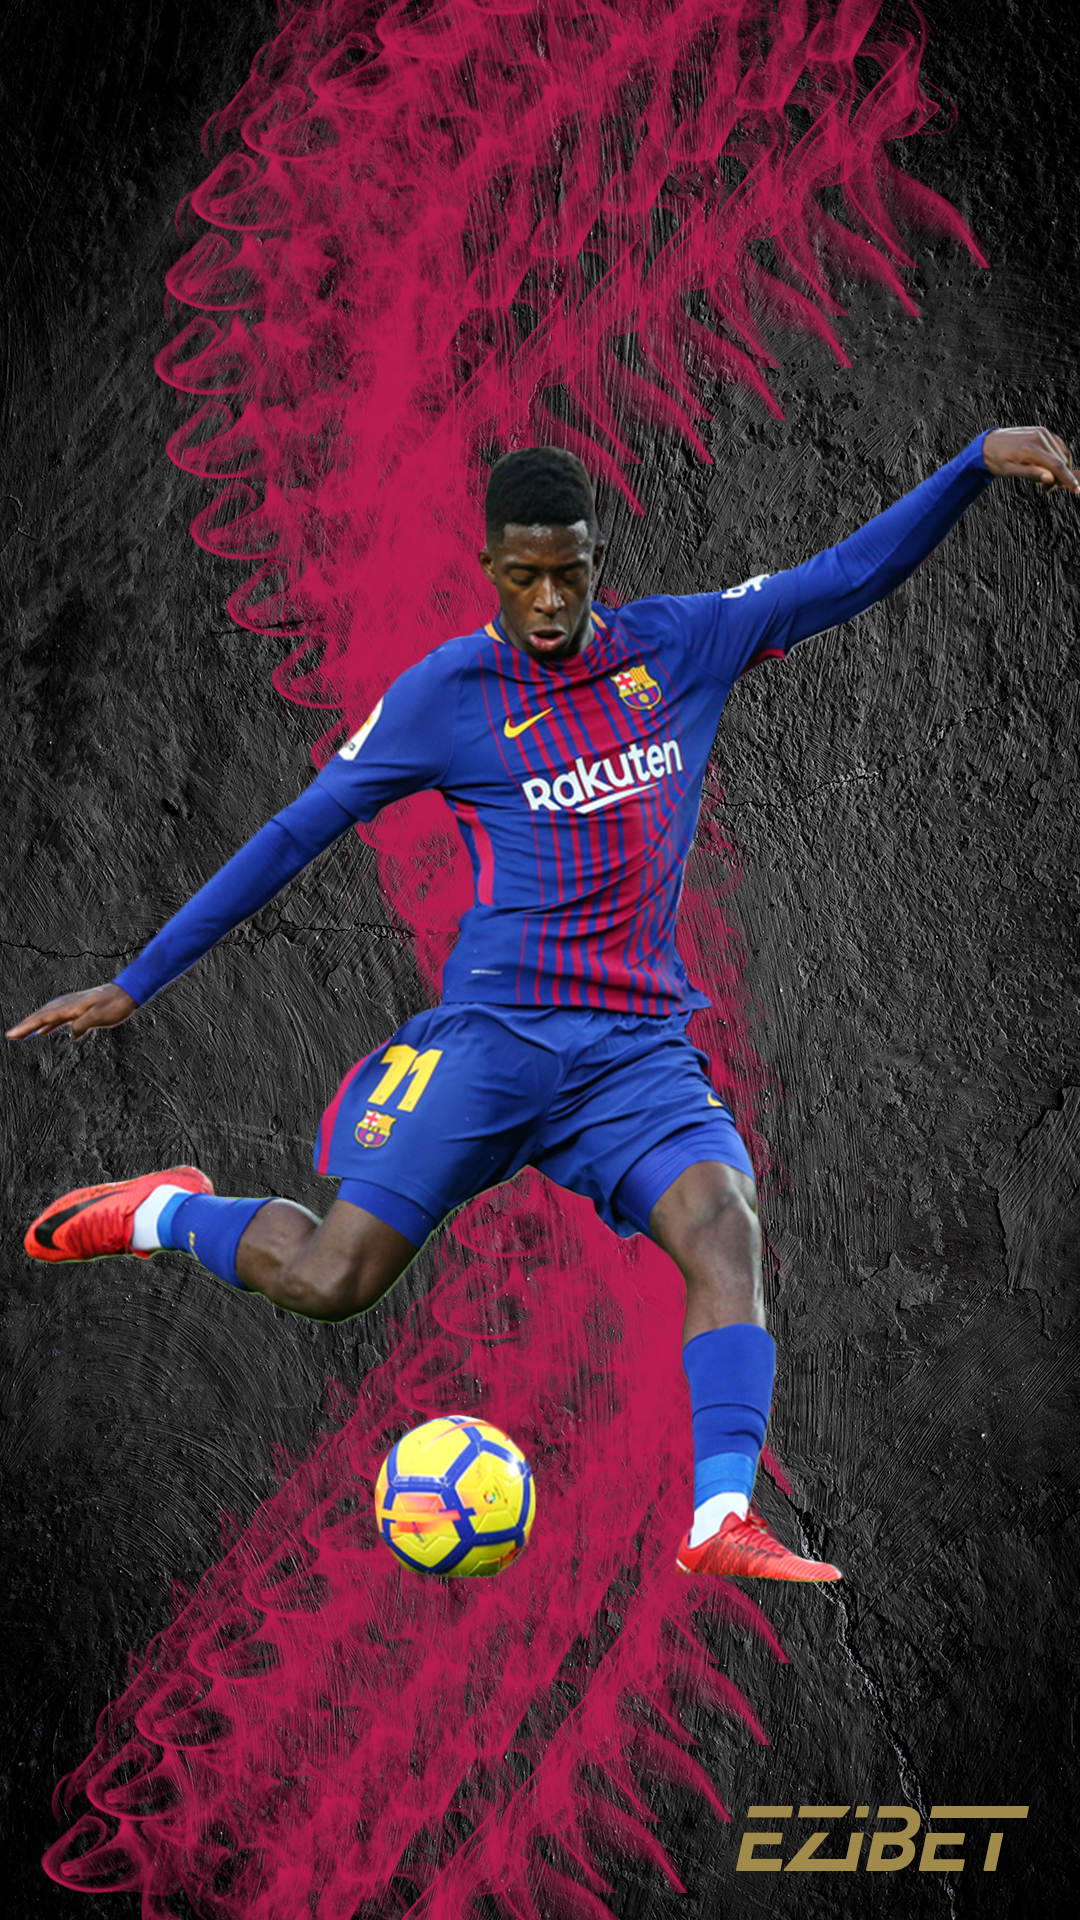 Ezibet mobile wallpapers DEMBELE.jpg